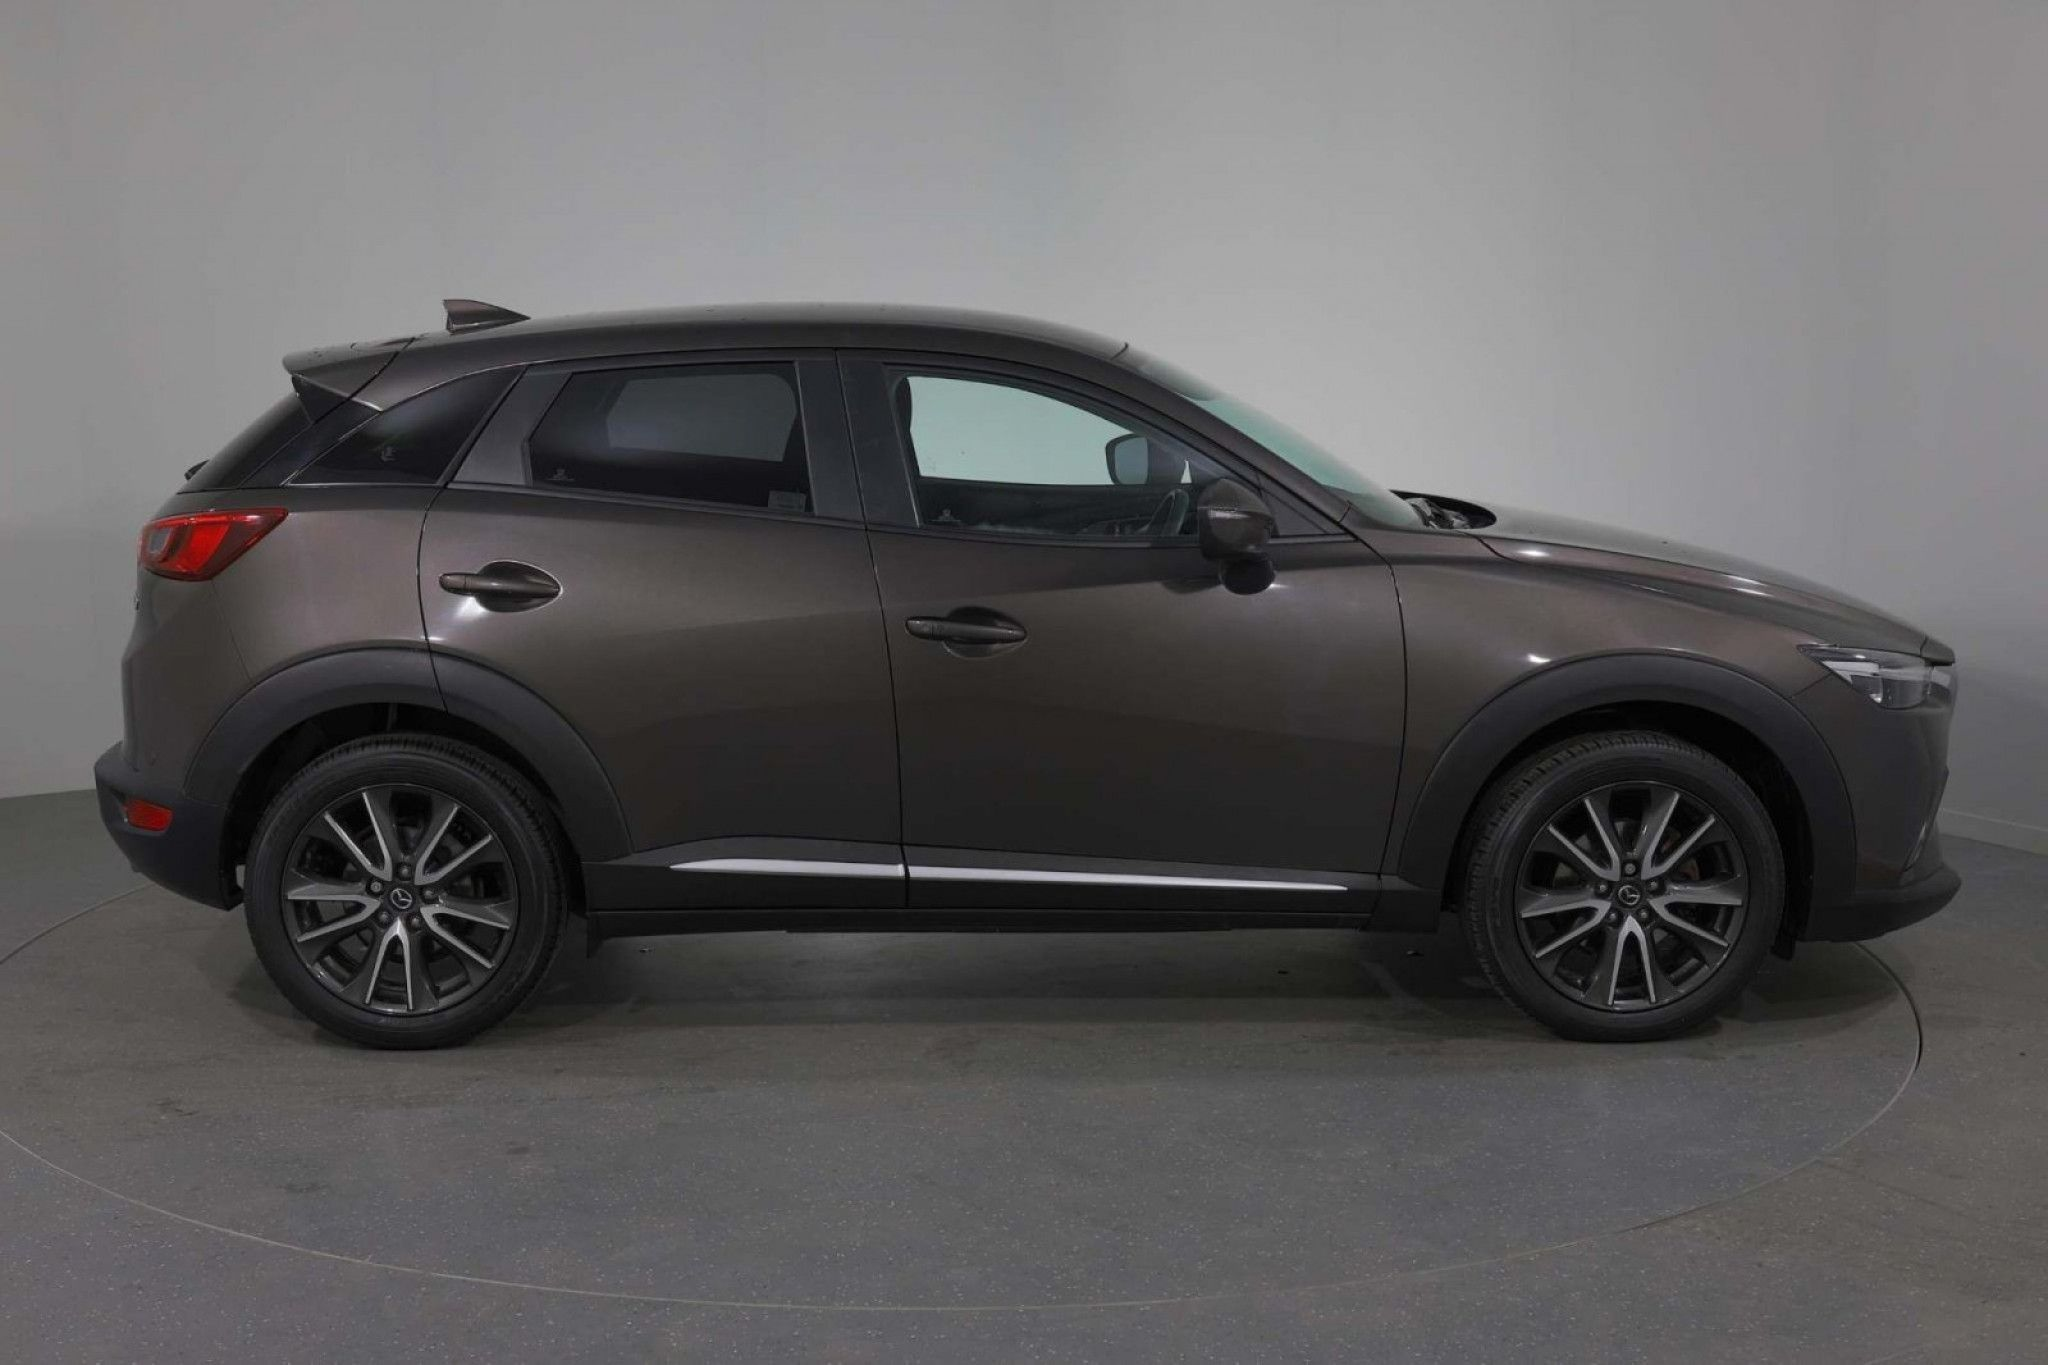 Mazda Cx3 1.5 SKYACTIVD Sport Nav (s/s) 5dr For Sale in